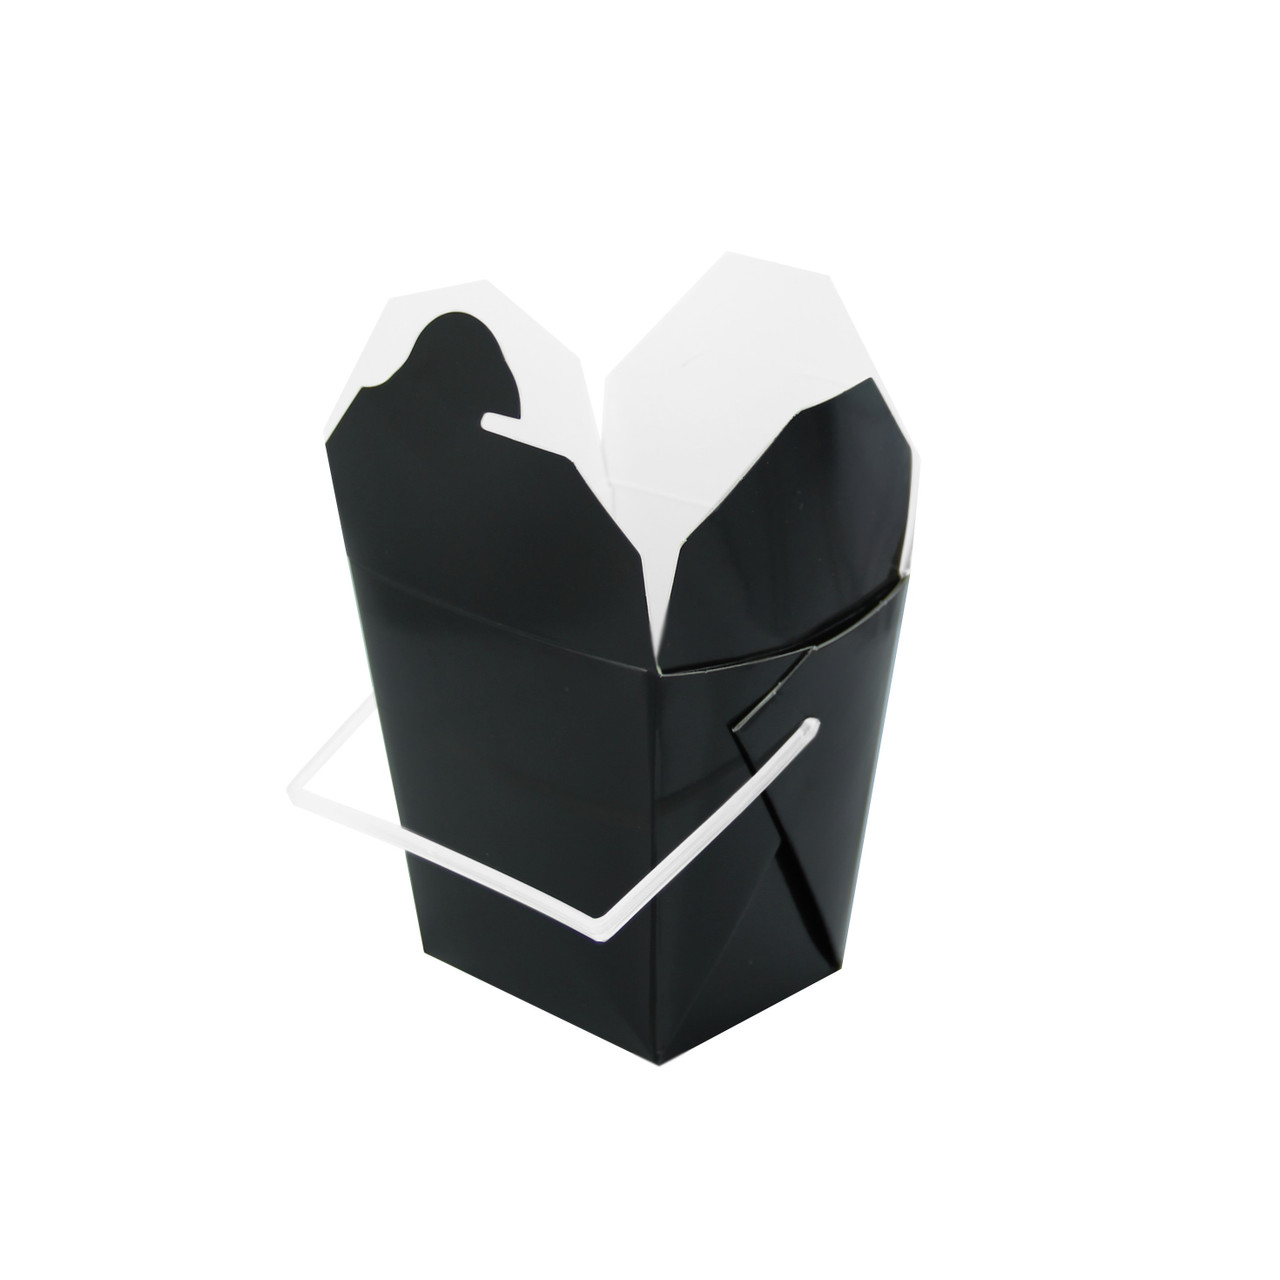 Black Take Out Box With Handle -16oz L:3.55 x W:2.8 x H:3.55in